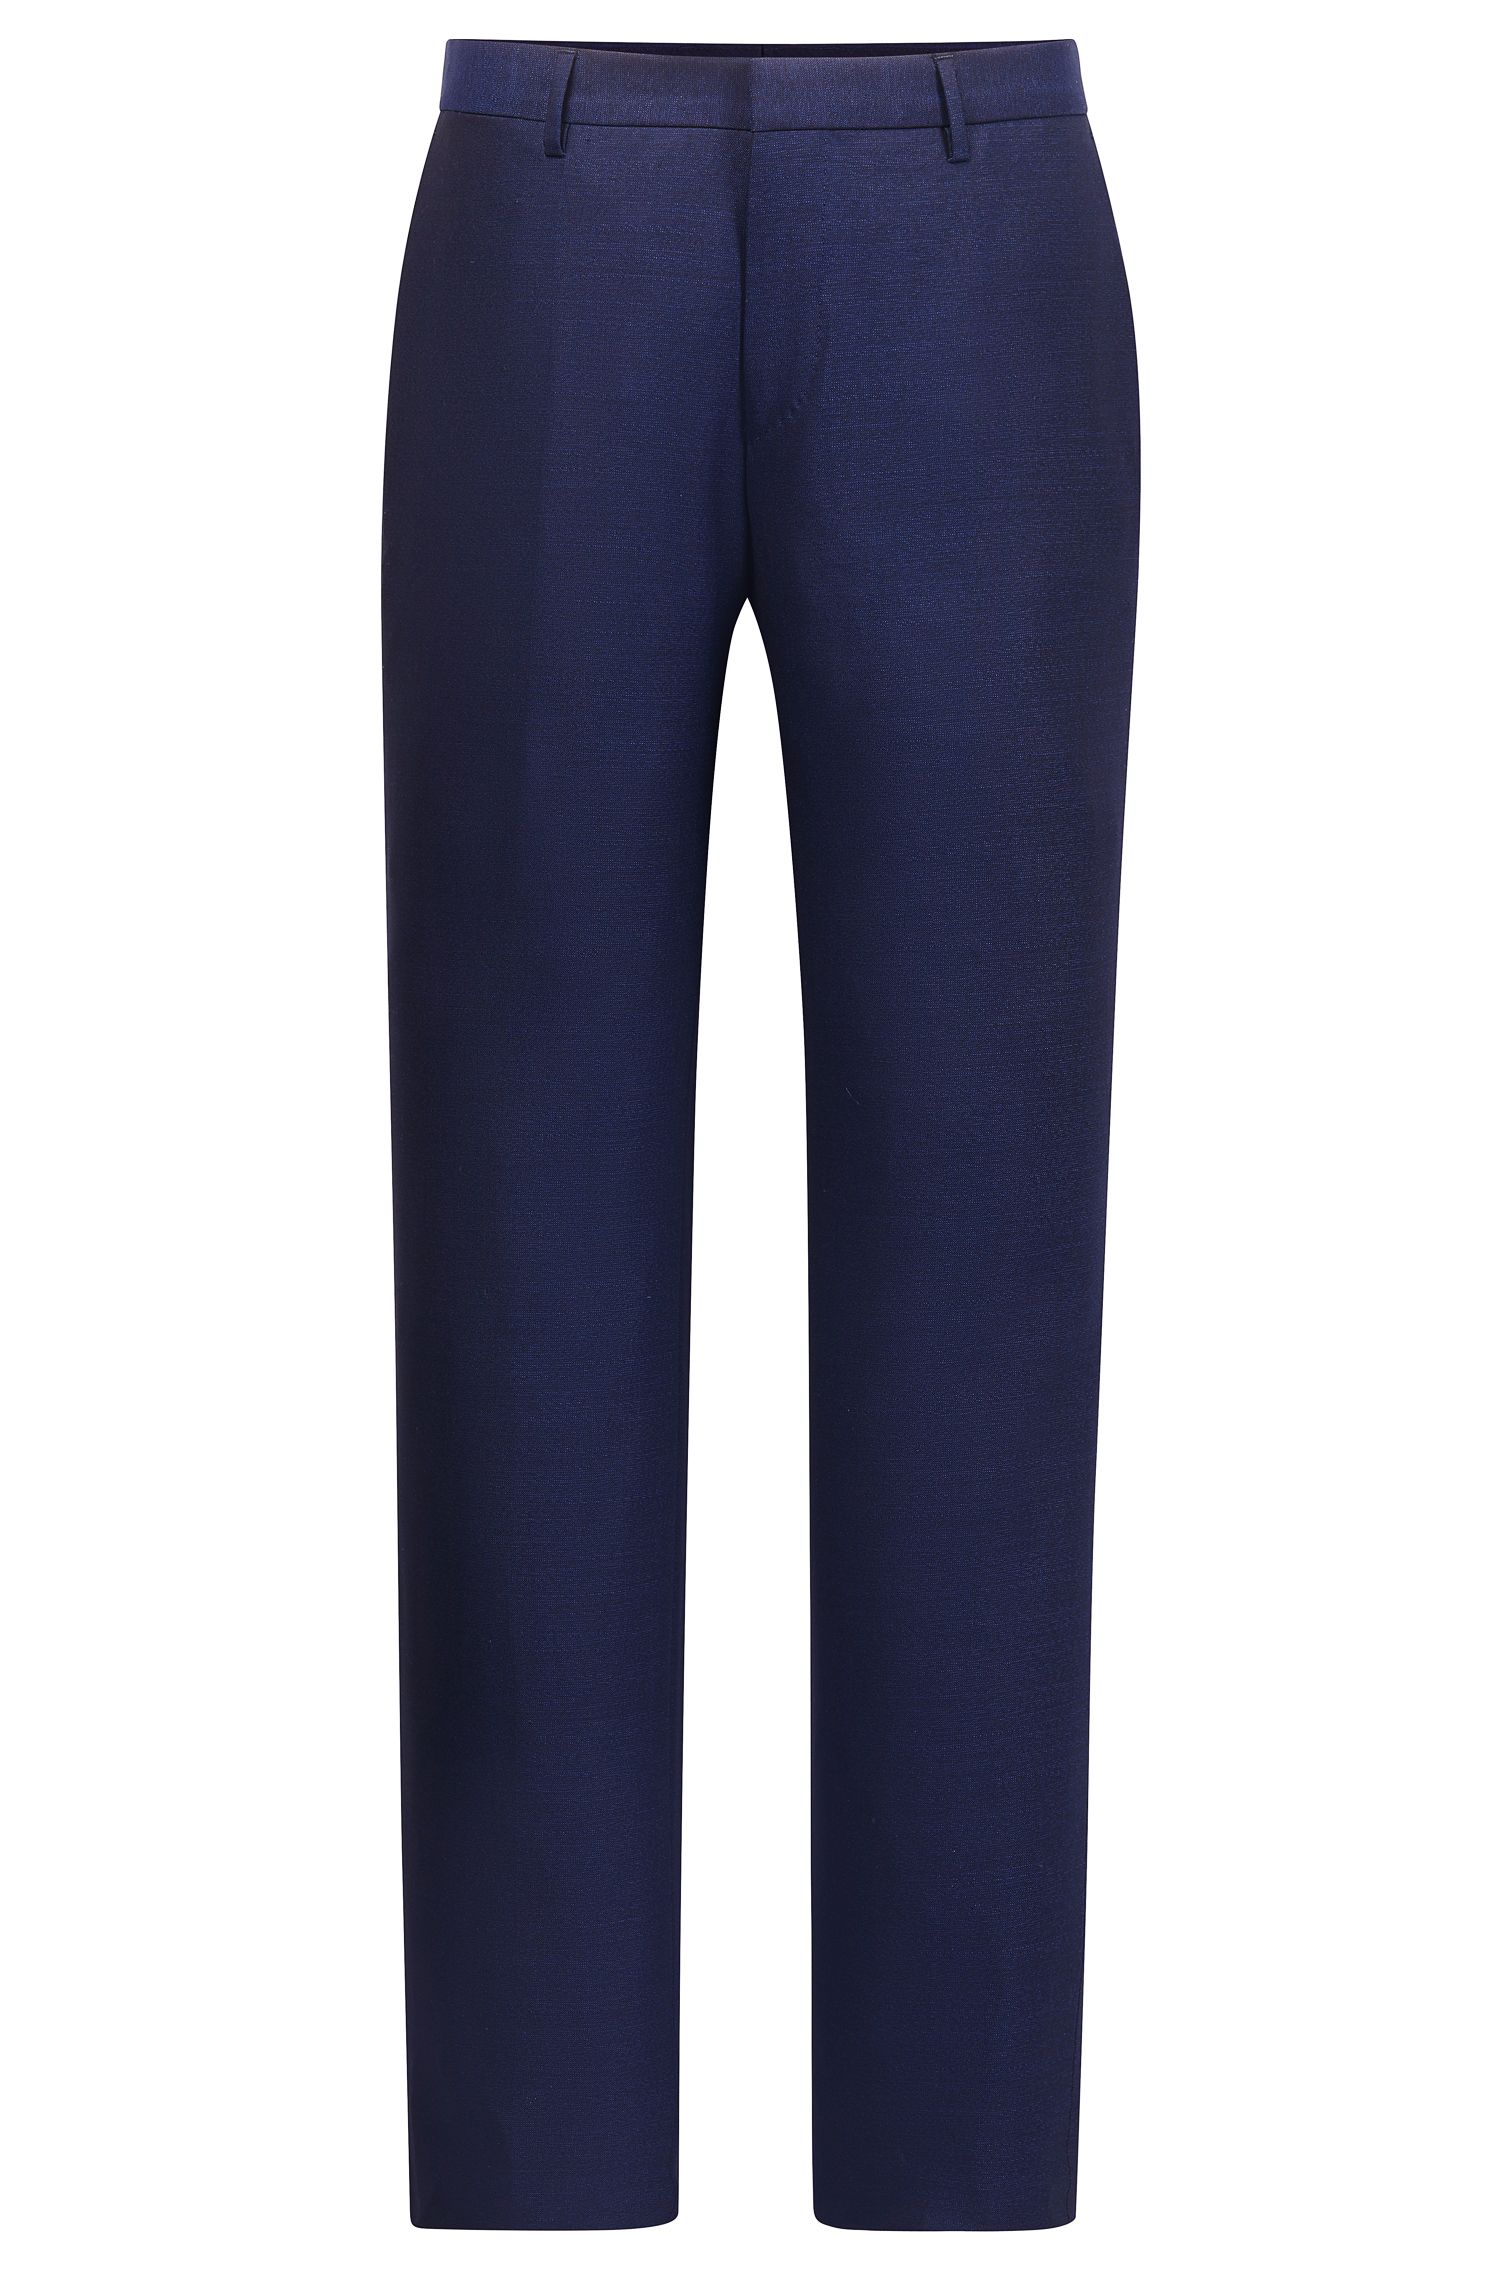 'T-Gleeve' | Slim Fit, Italian Virgin Wool Dress Pants